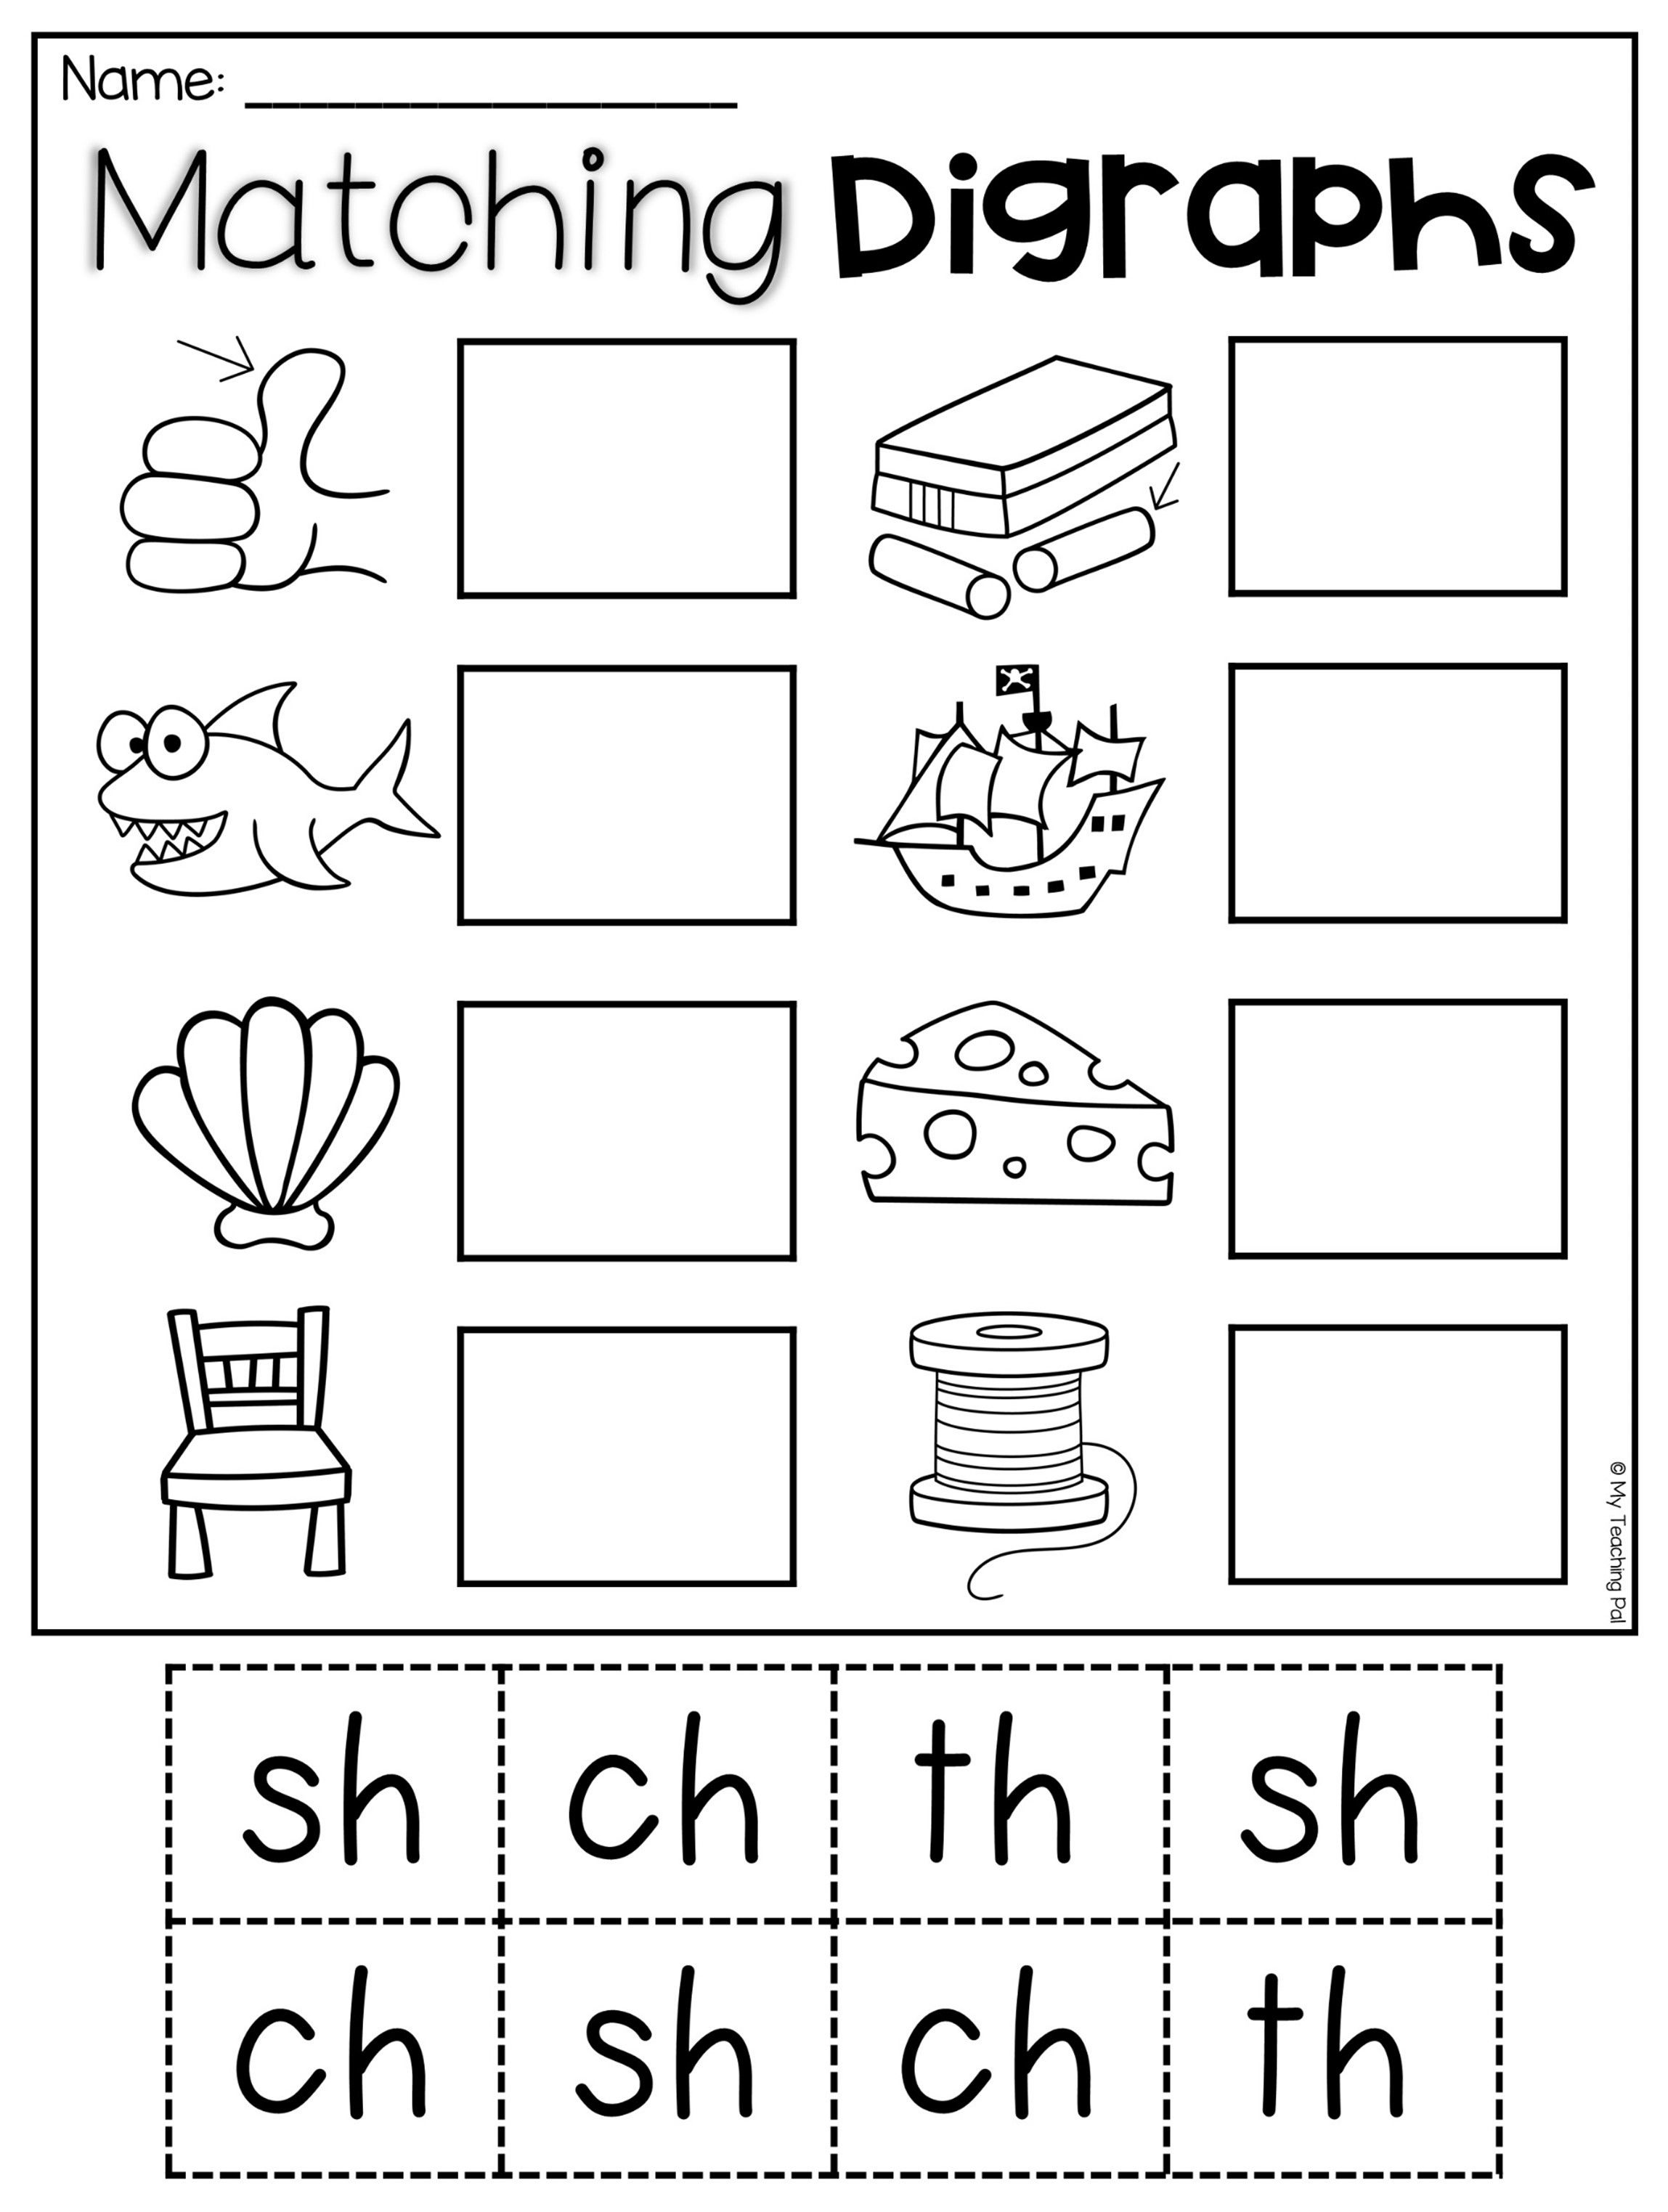 Matching Digraphs Worksheet For Sh Ch Th This Packet Is